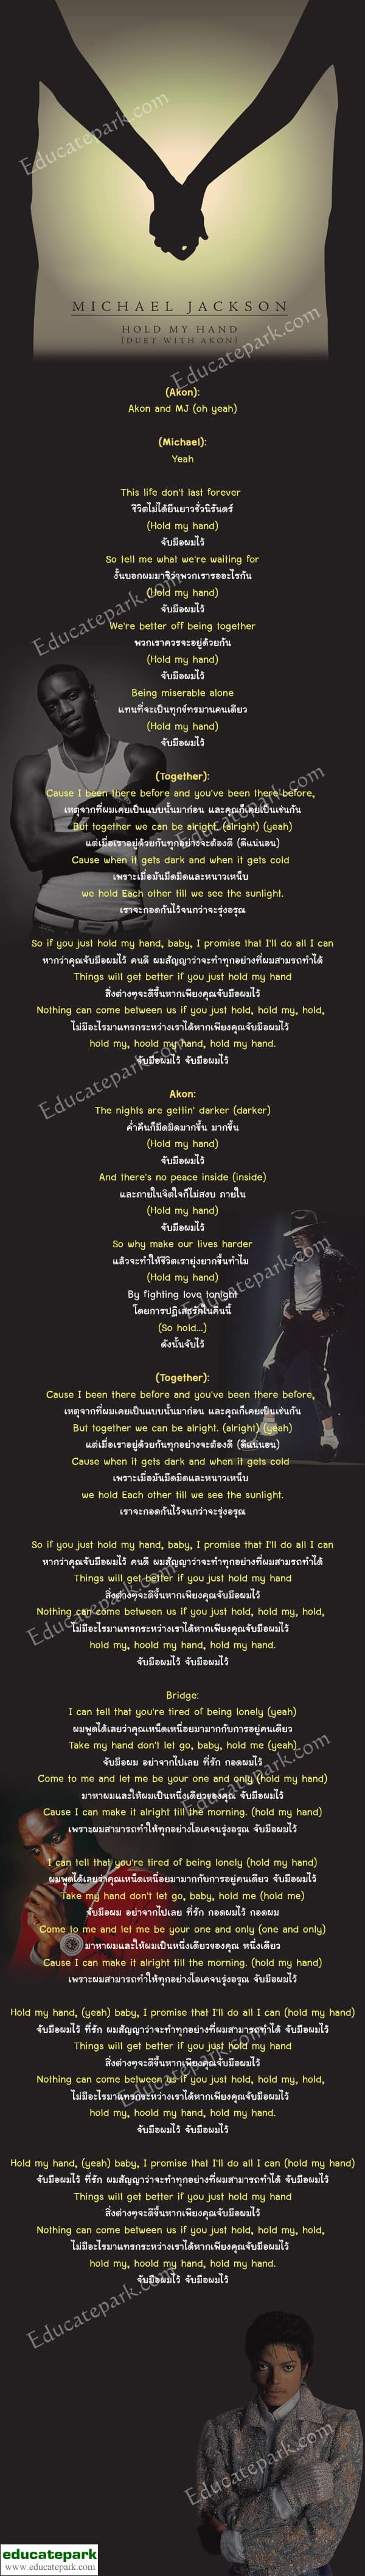 แปลเพลง Hold My Hand - Akon featuring Michael Jackson